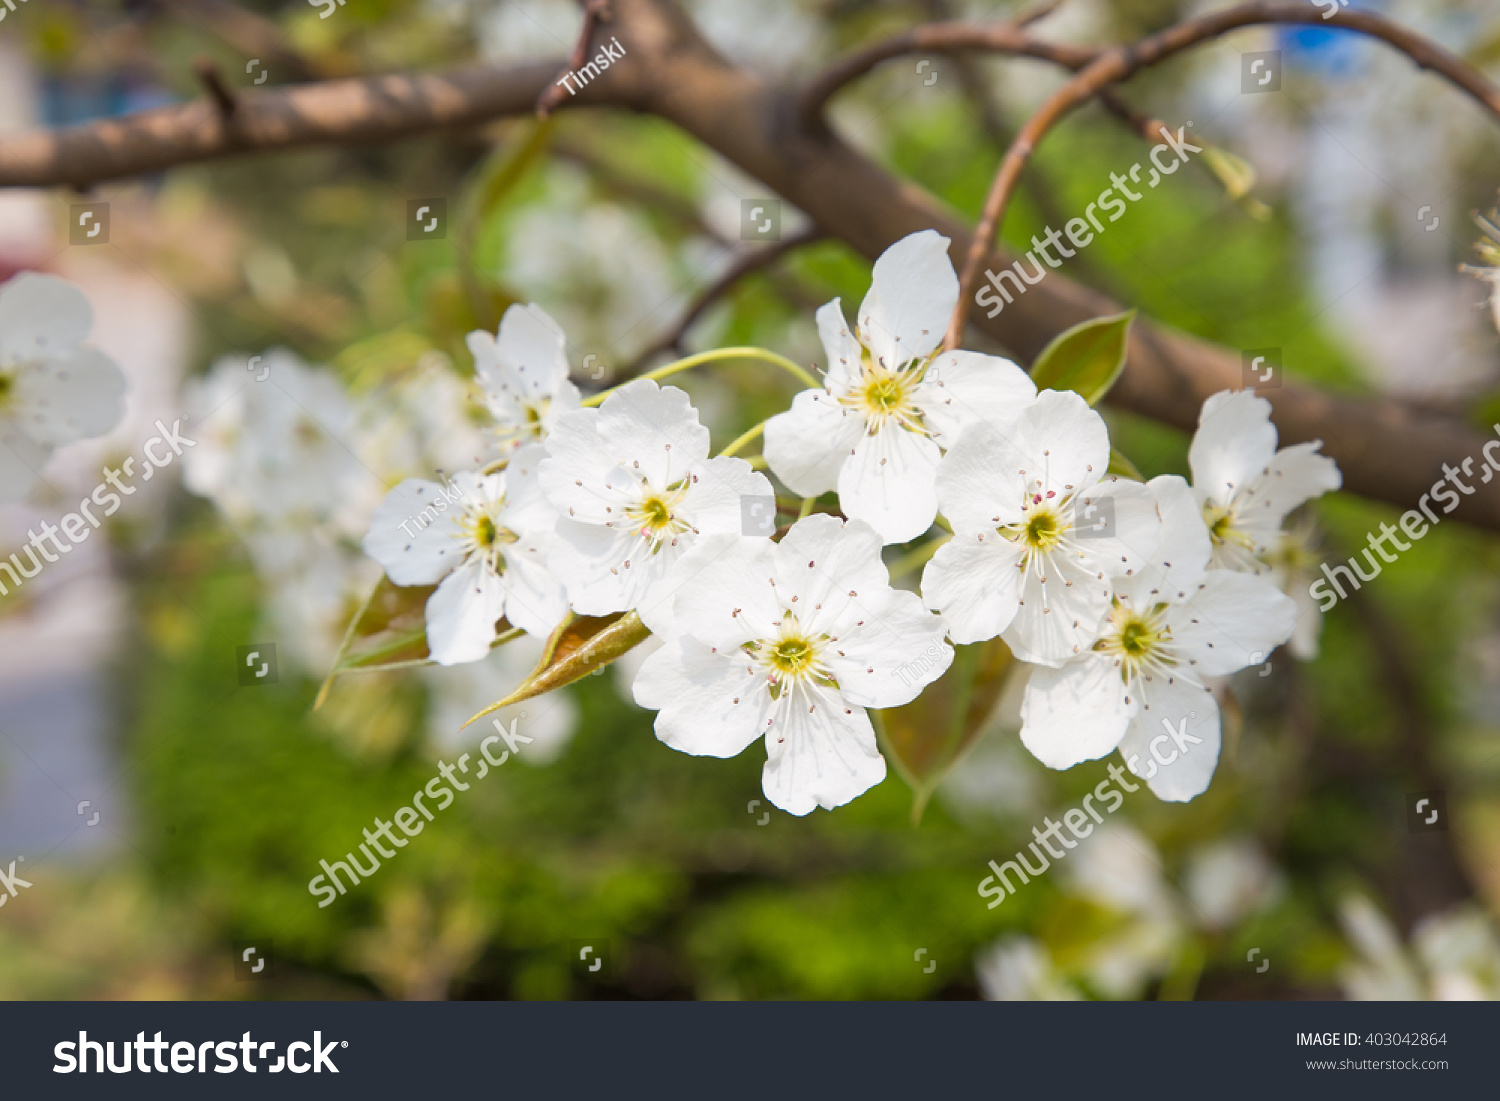 Blossom of fruit trees white flowers pear tree ez canvas id 403042864 mightylinksfo